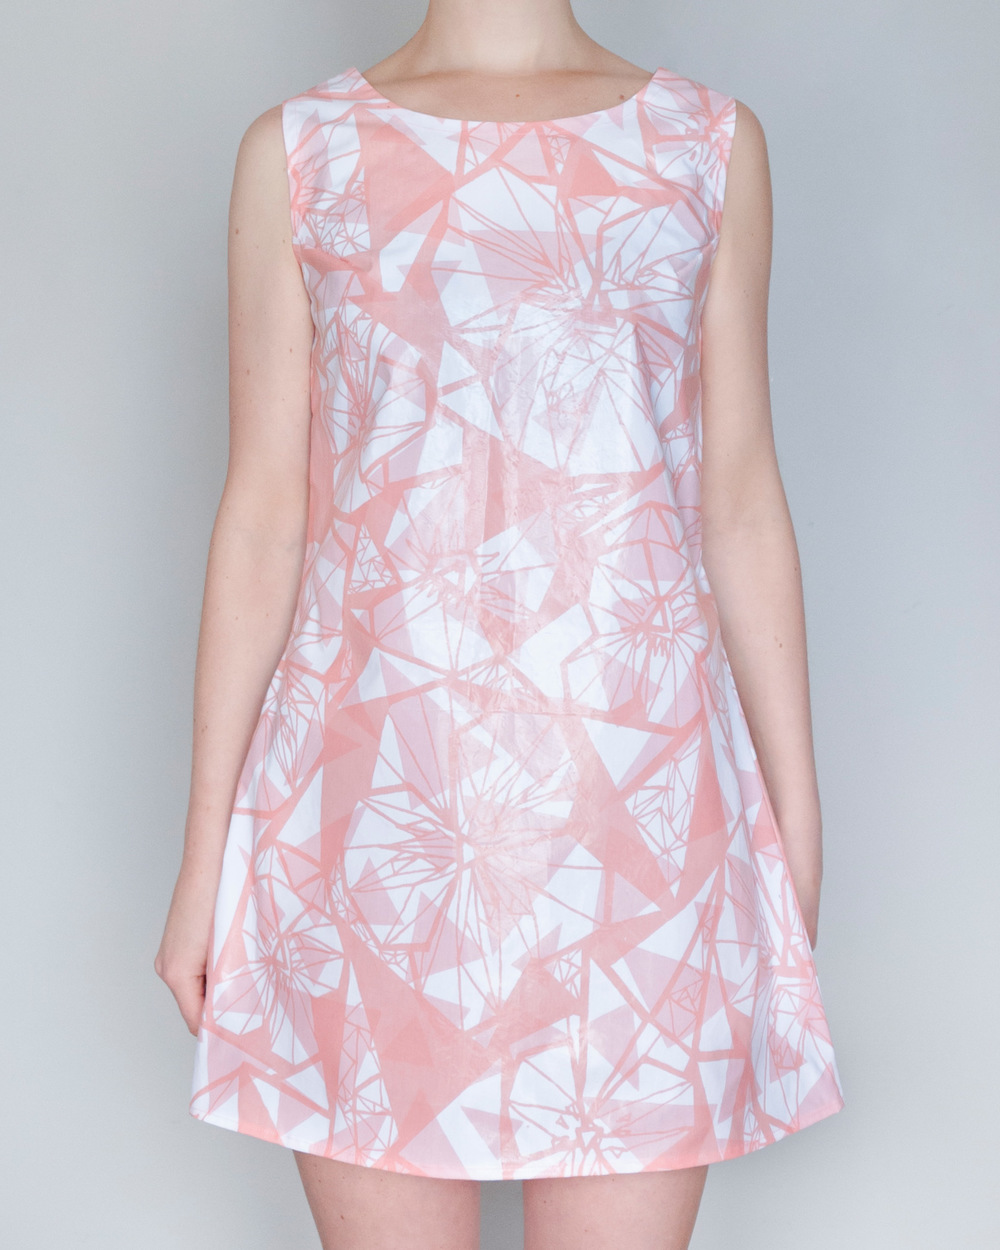 BLOOM Peach dress